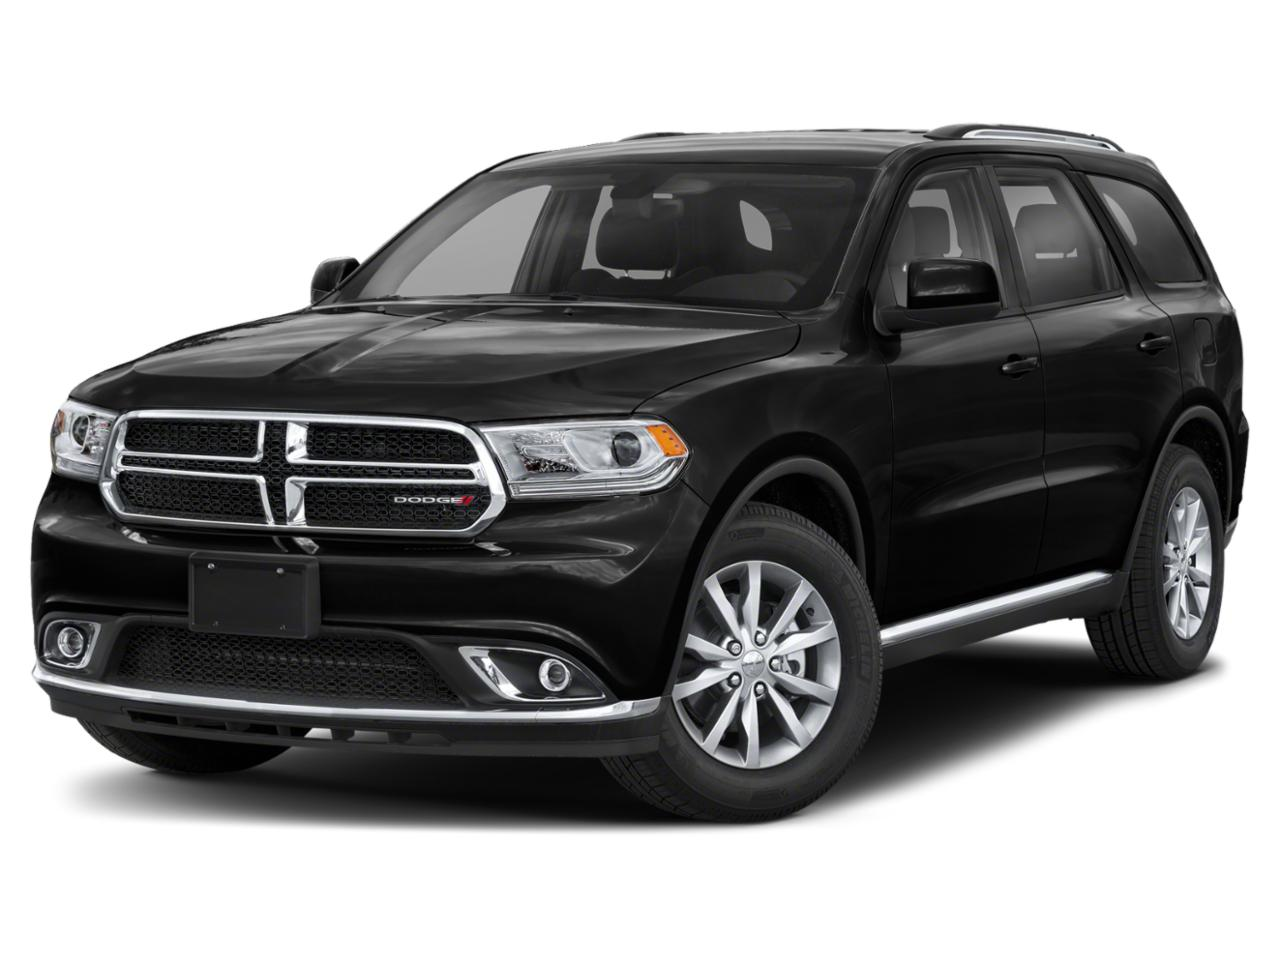 2018 Dodge Durango Vehicle Photo in Riverside, CA 92504